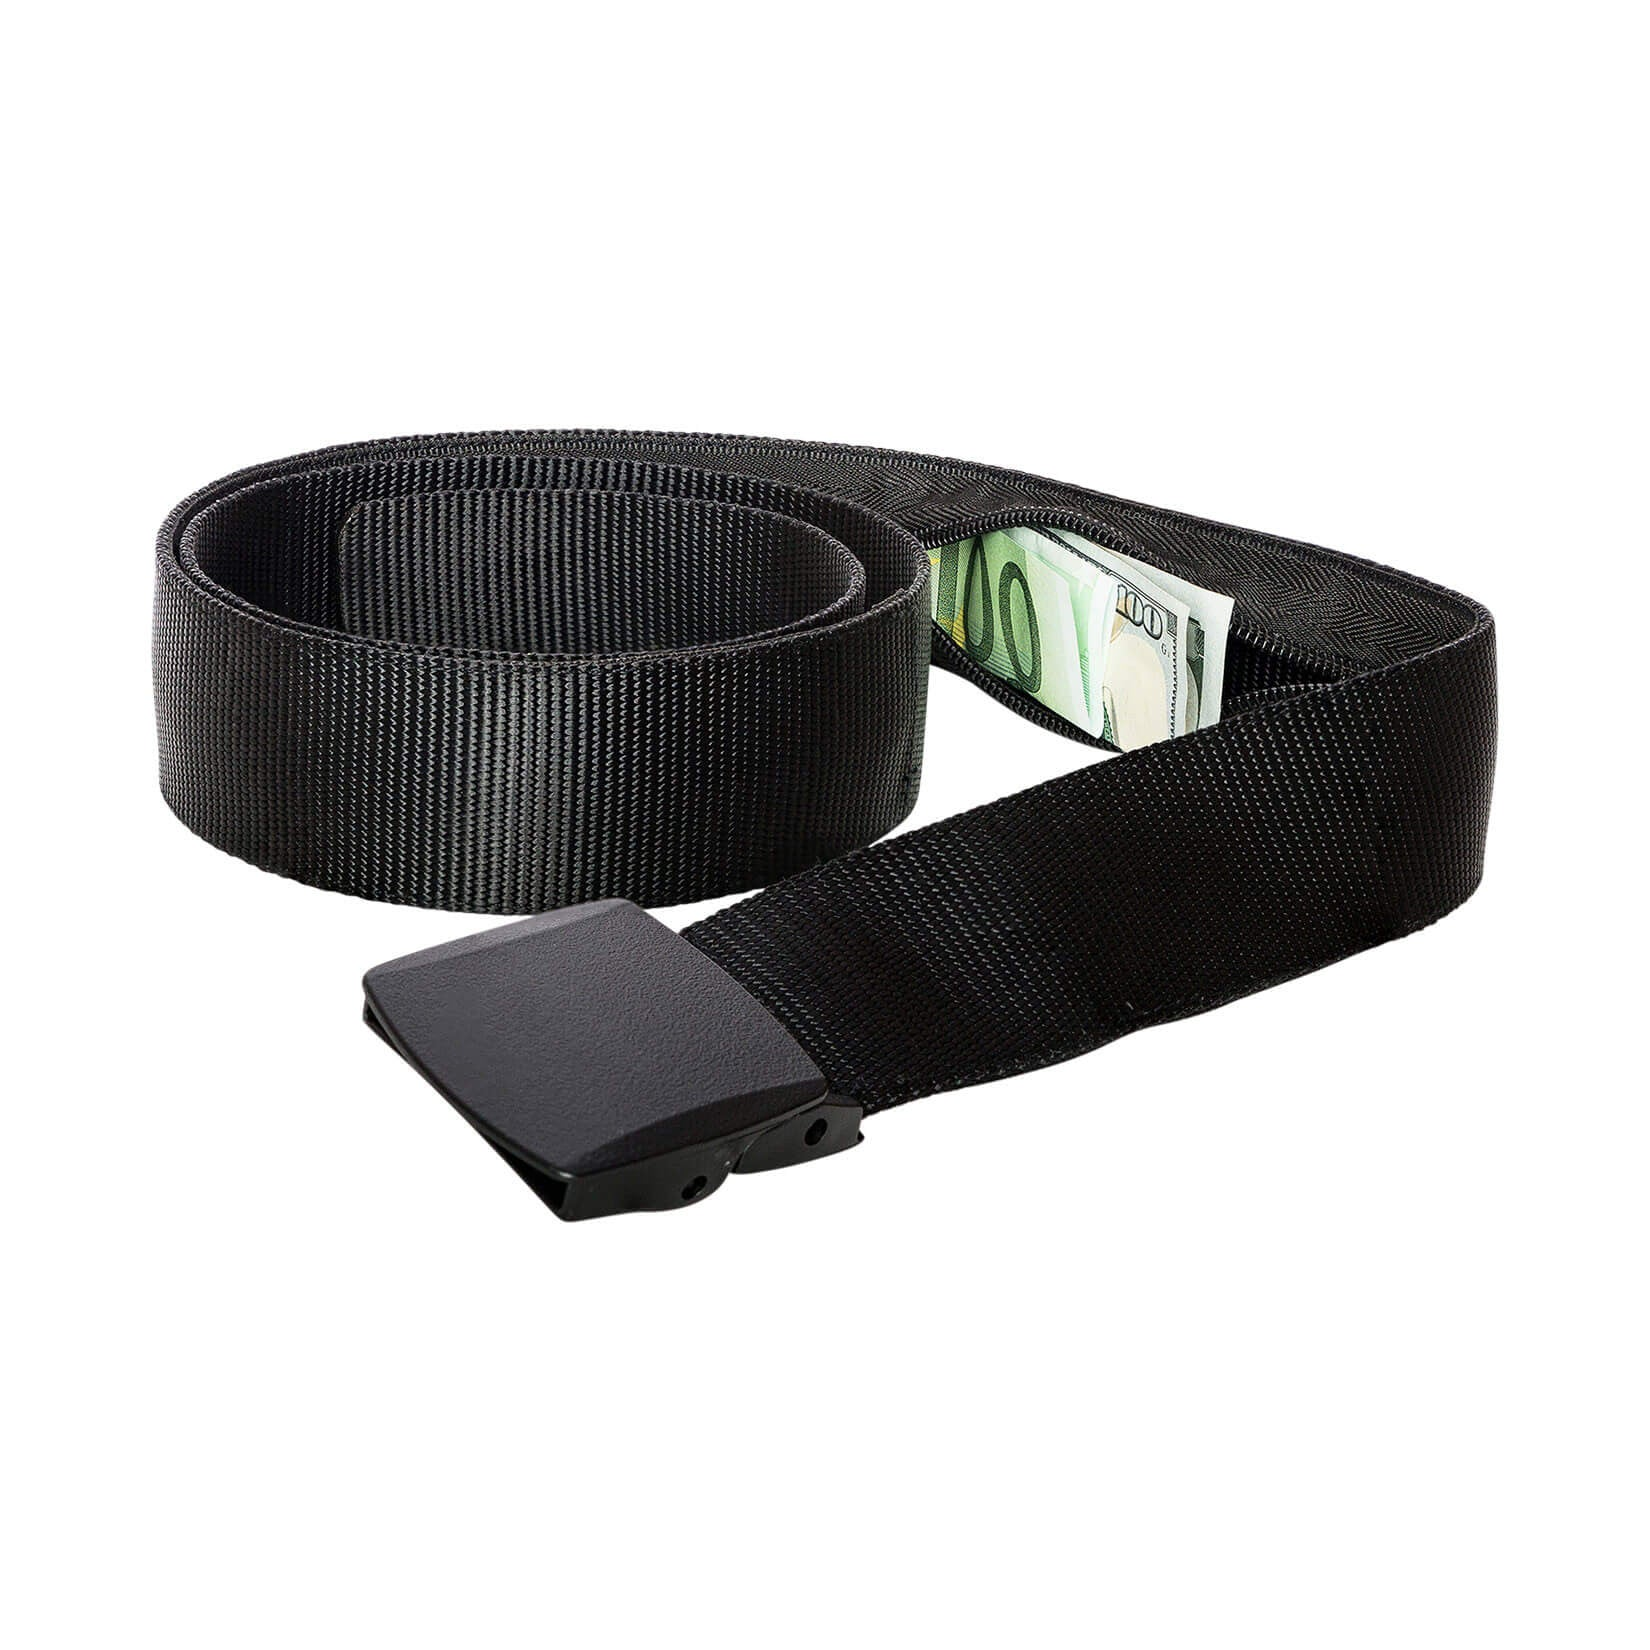 4667a2dfd202 Travel Security Belt & Hidden Money Wallet